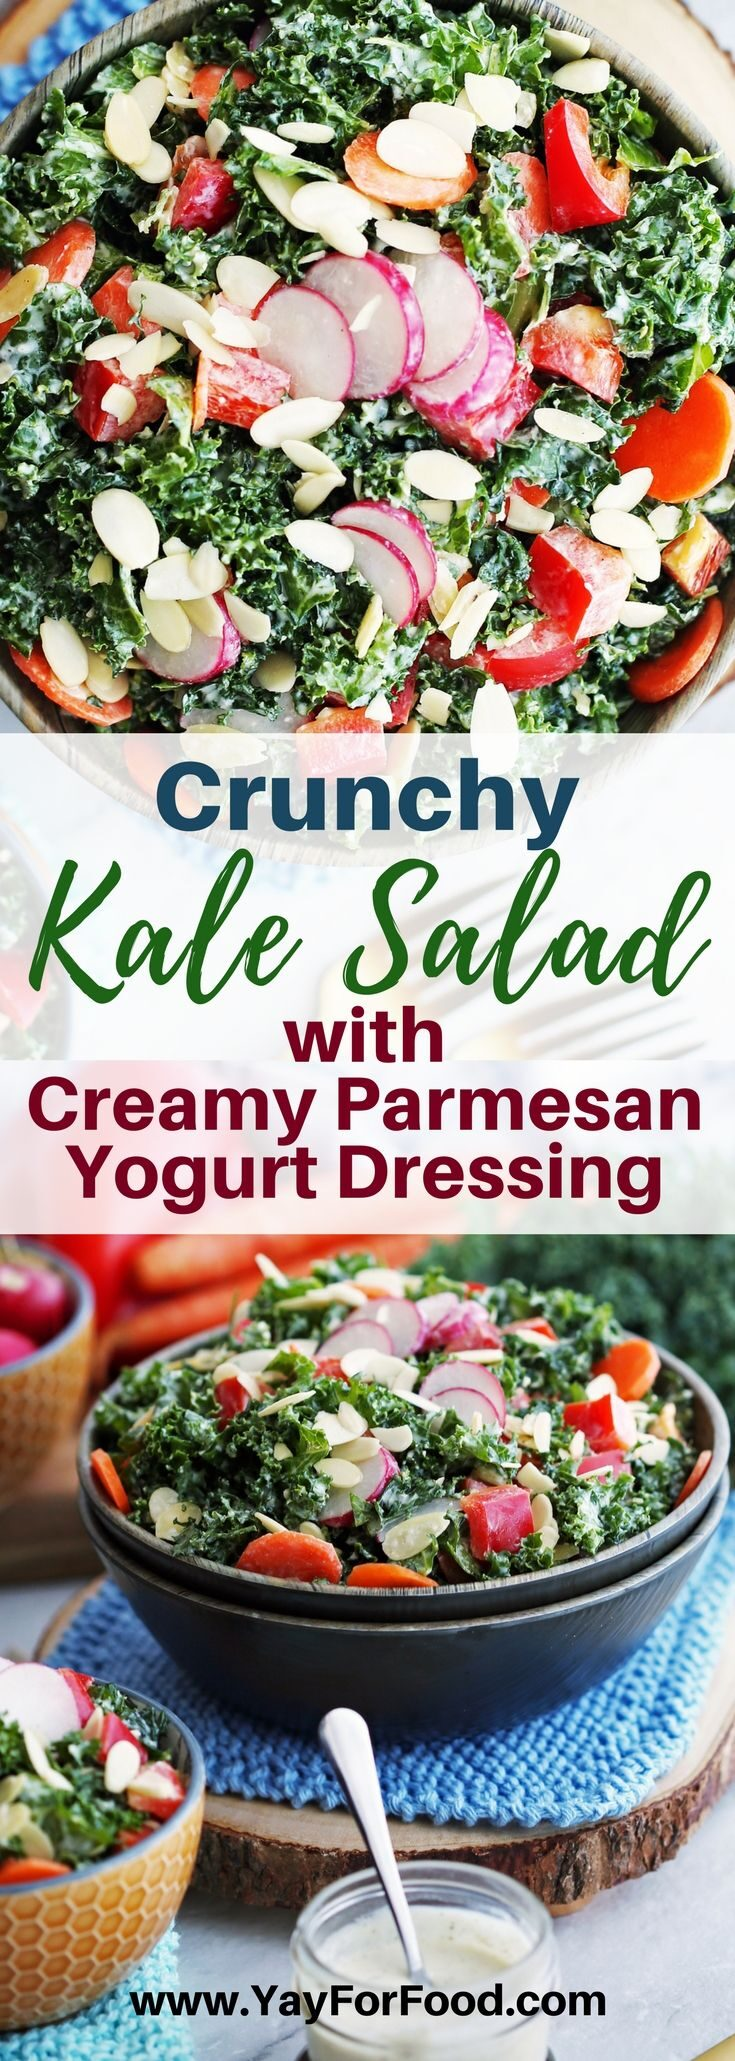 Check out this delicious salad featuring nutritious green kale, colourful vegetables, and a savoury homemade parmesan dressing!